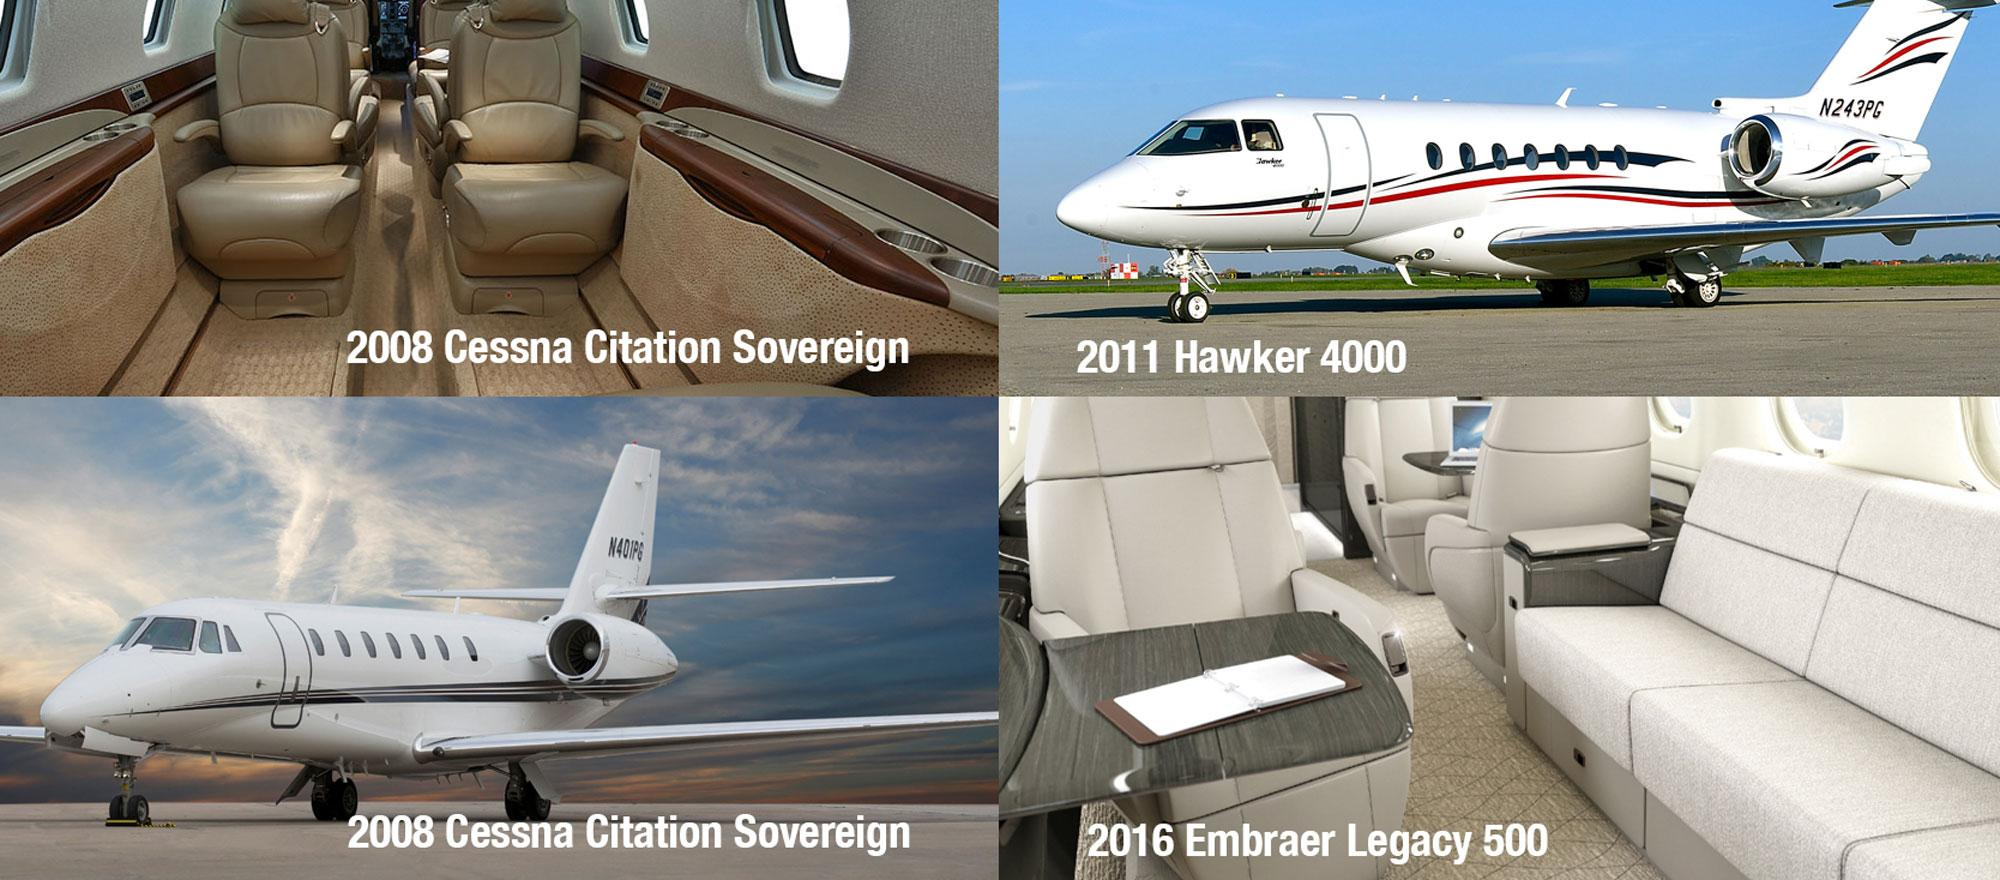 Late-Model Midsize and Super-Midsize Business Jets